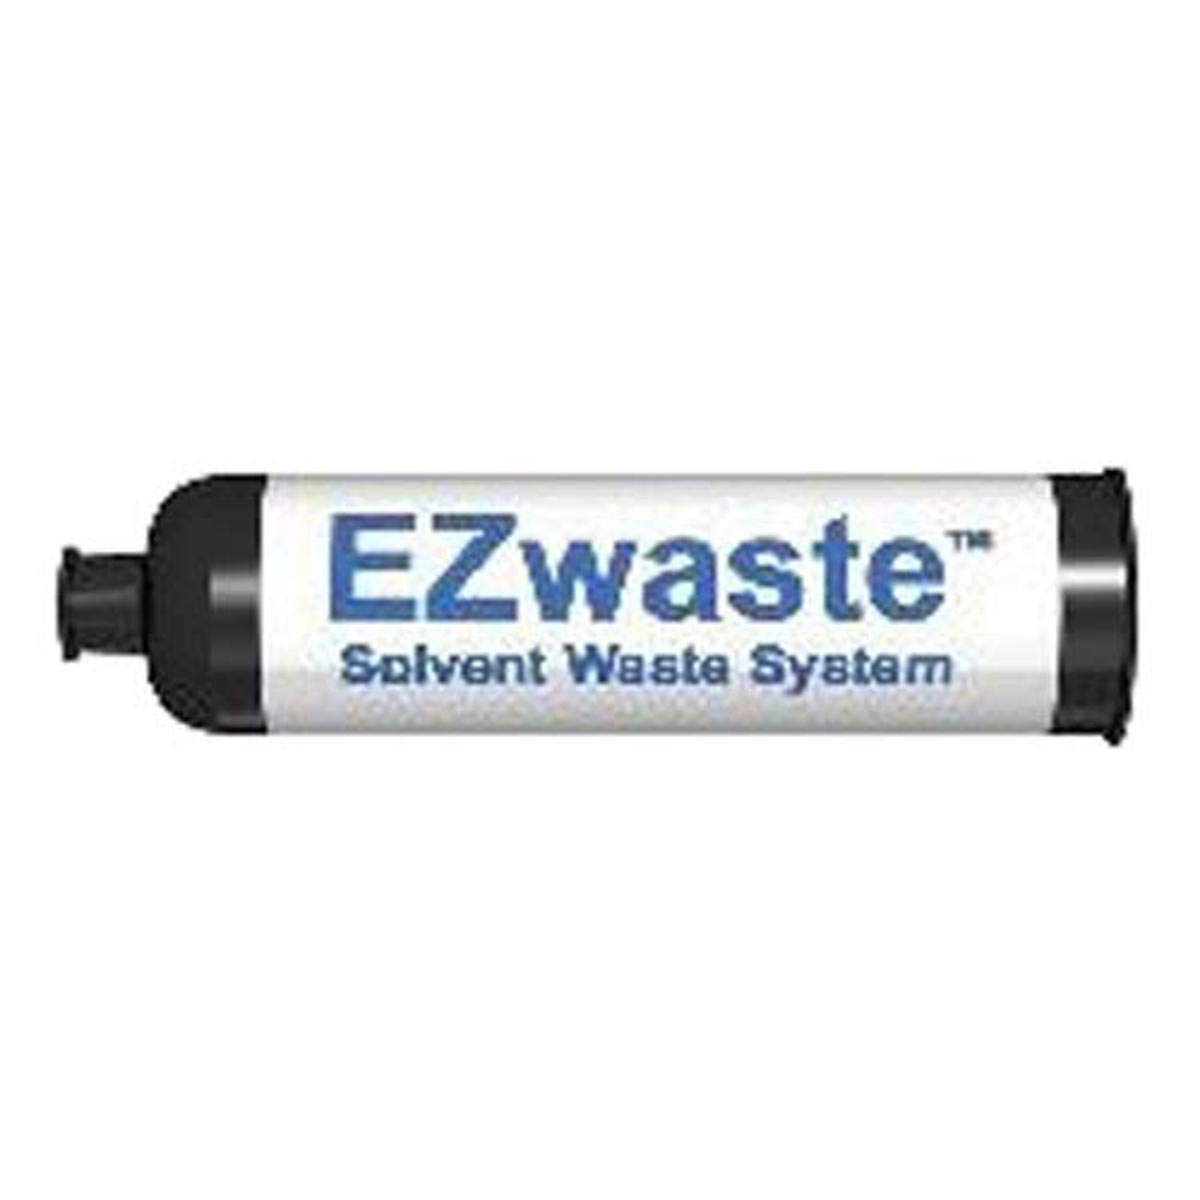 Thomas 332-4419-TMS EZwaste Safety Vent Carboy with 83 mm Versa Cap, 4 Ports for 1/8 OD Tubing, 3 Ports for 1/4 OD Tubing, 20 L